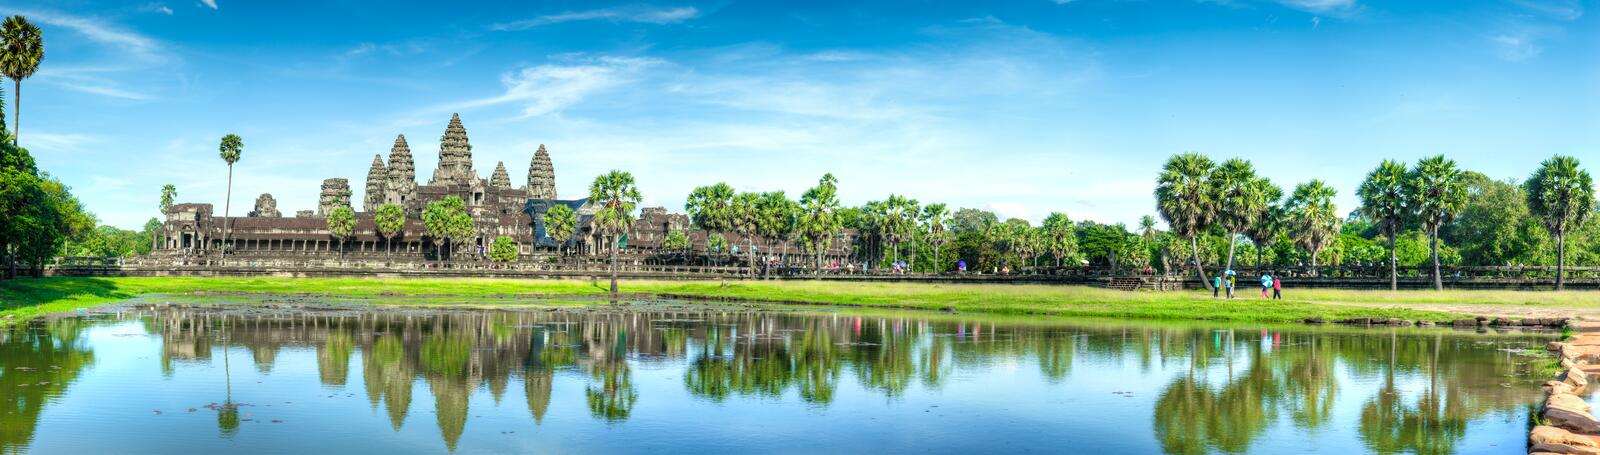 Angkor Vat photo stock